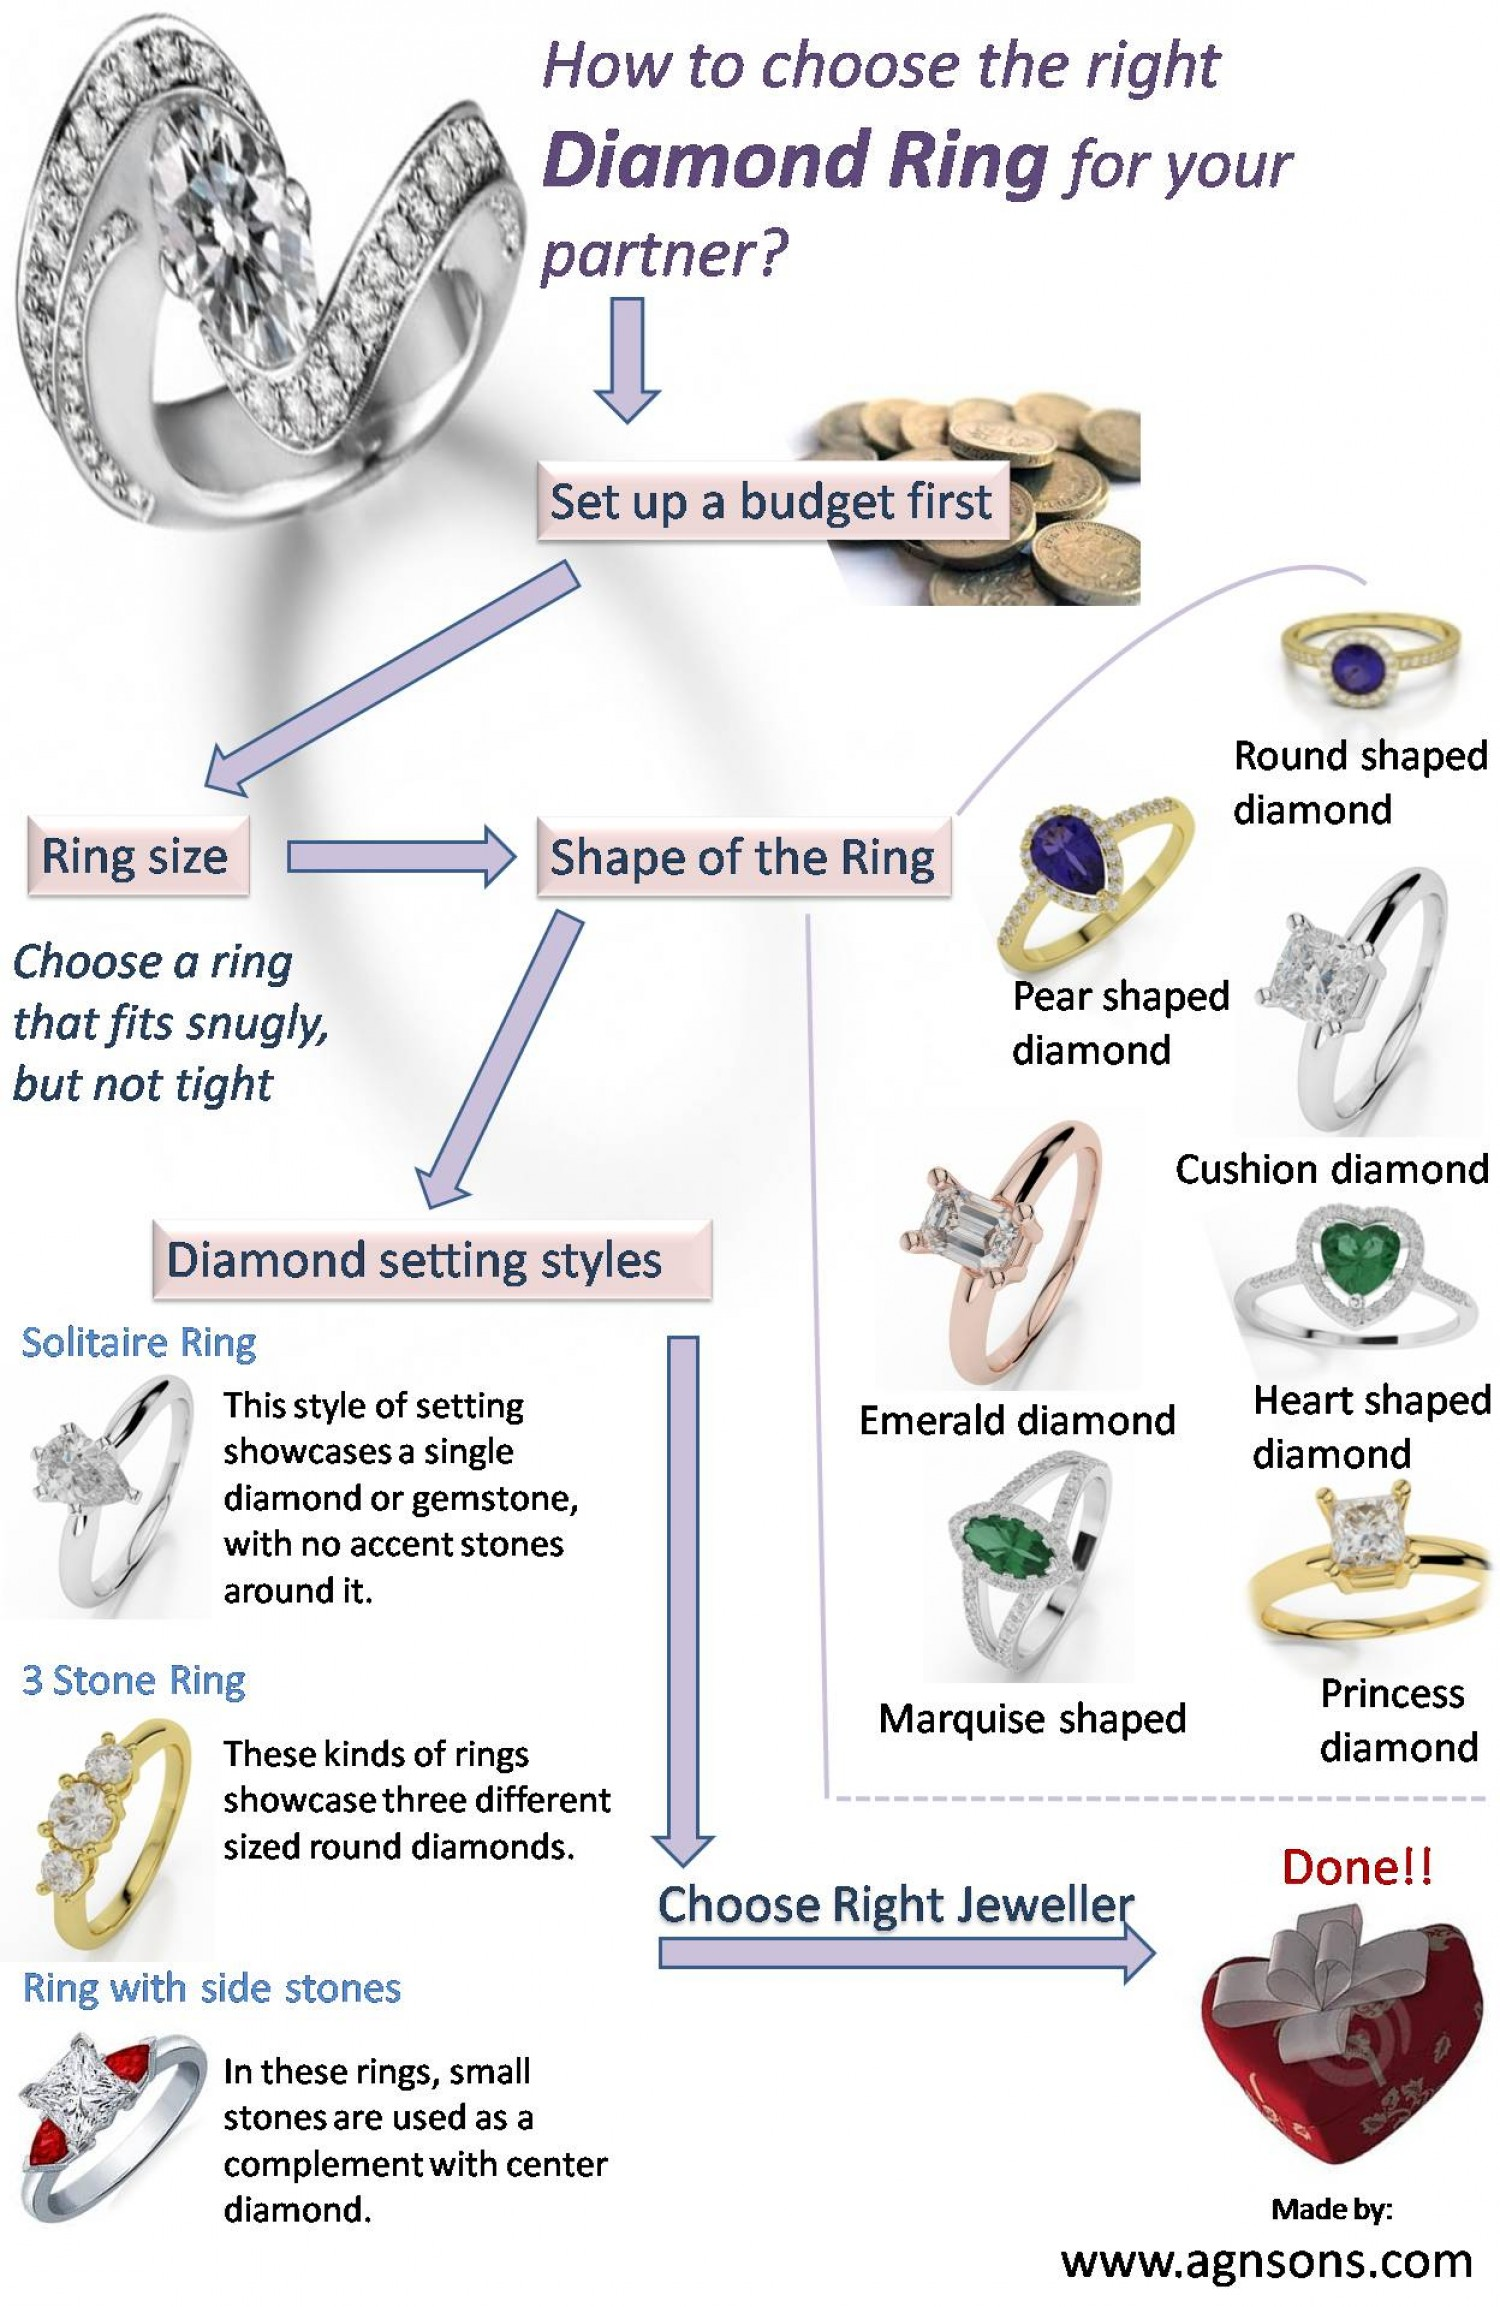 How to Choose Right Ring